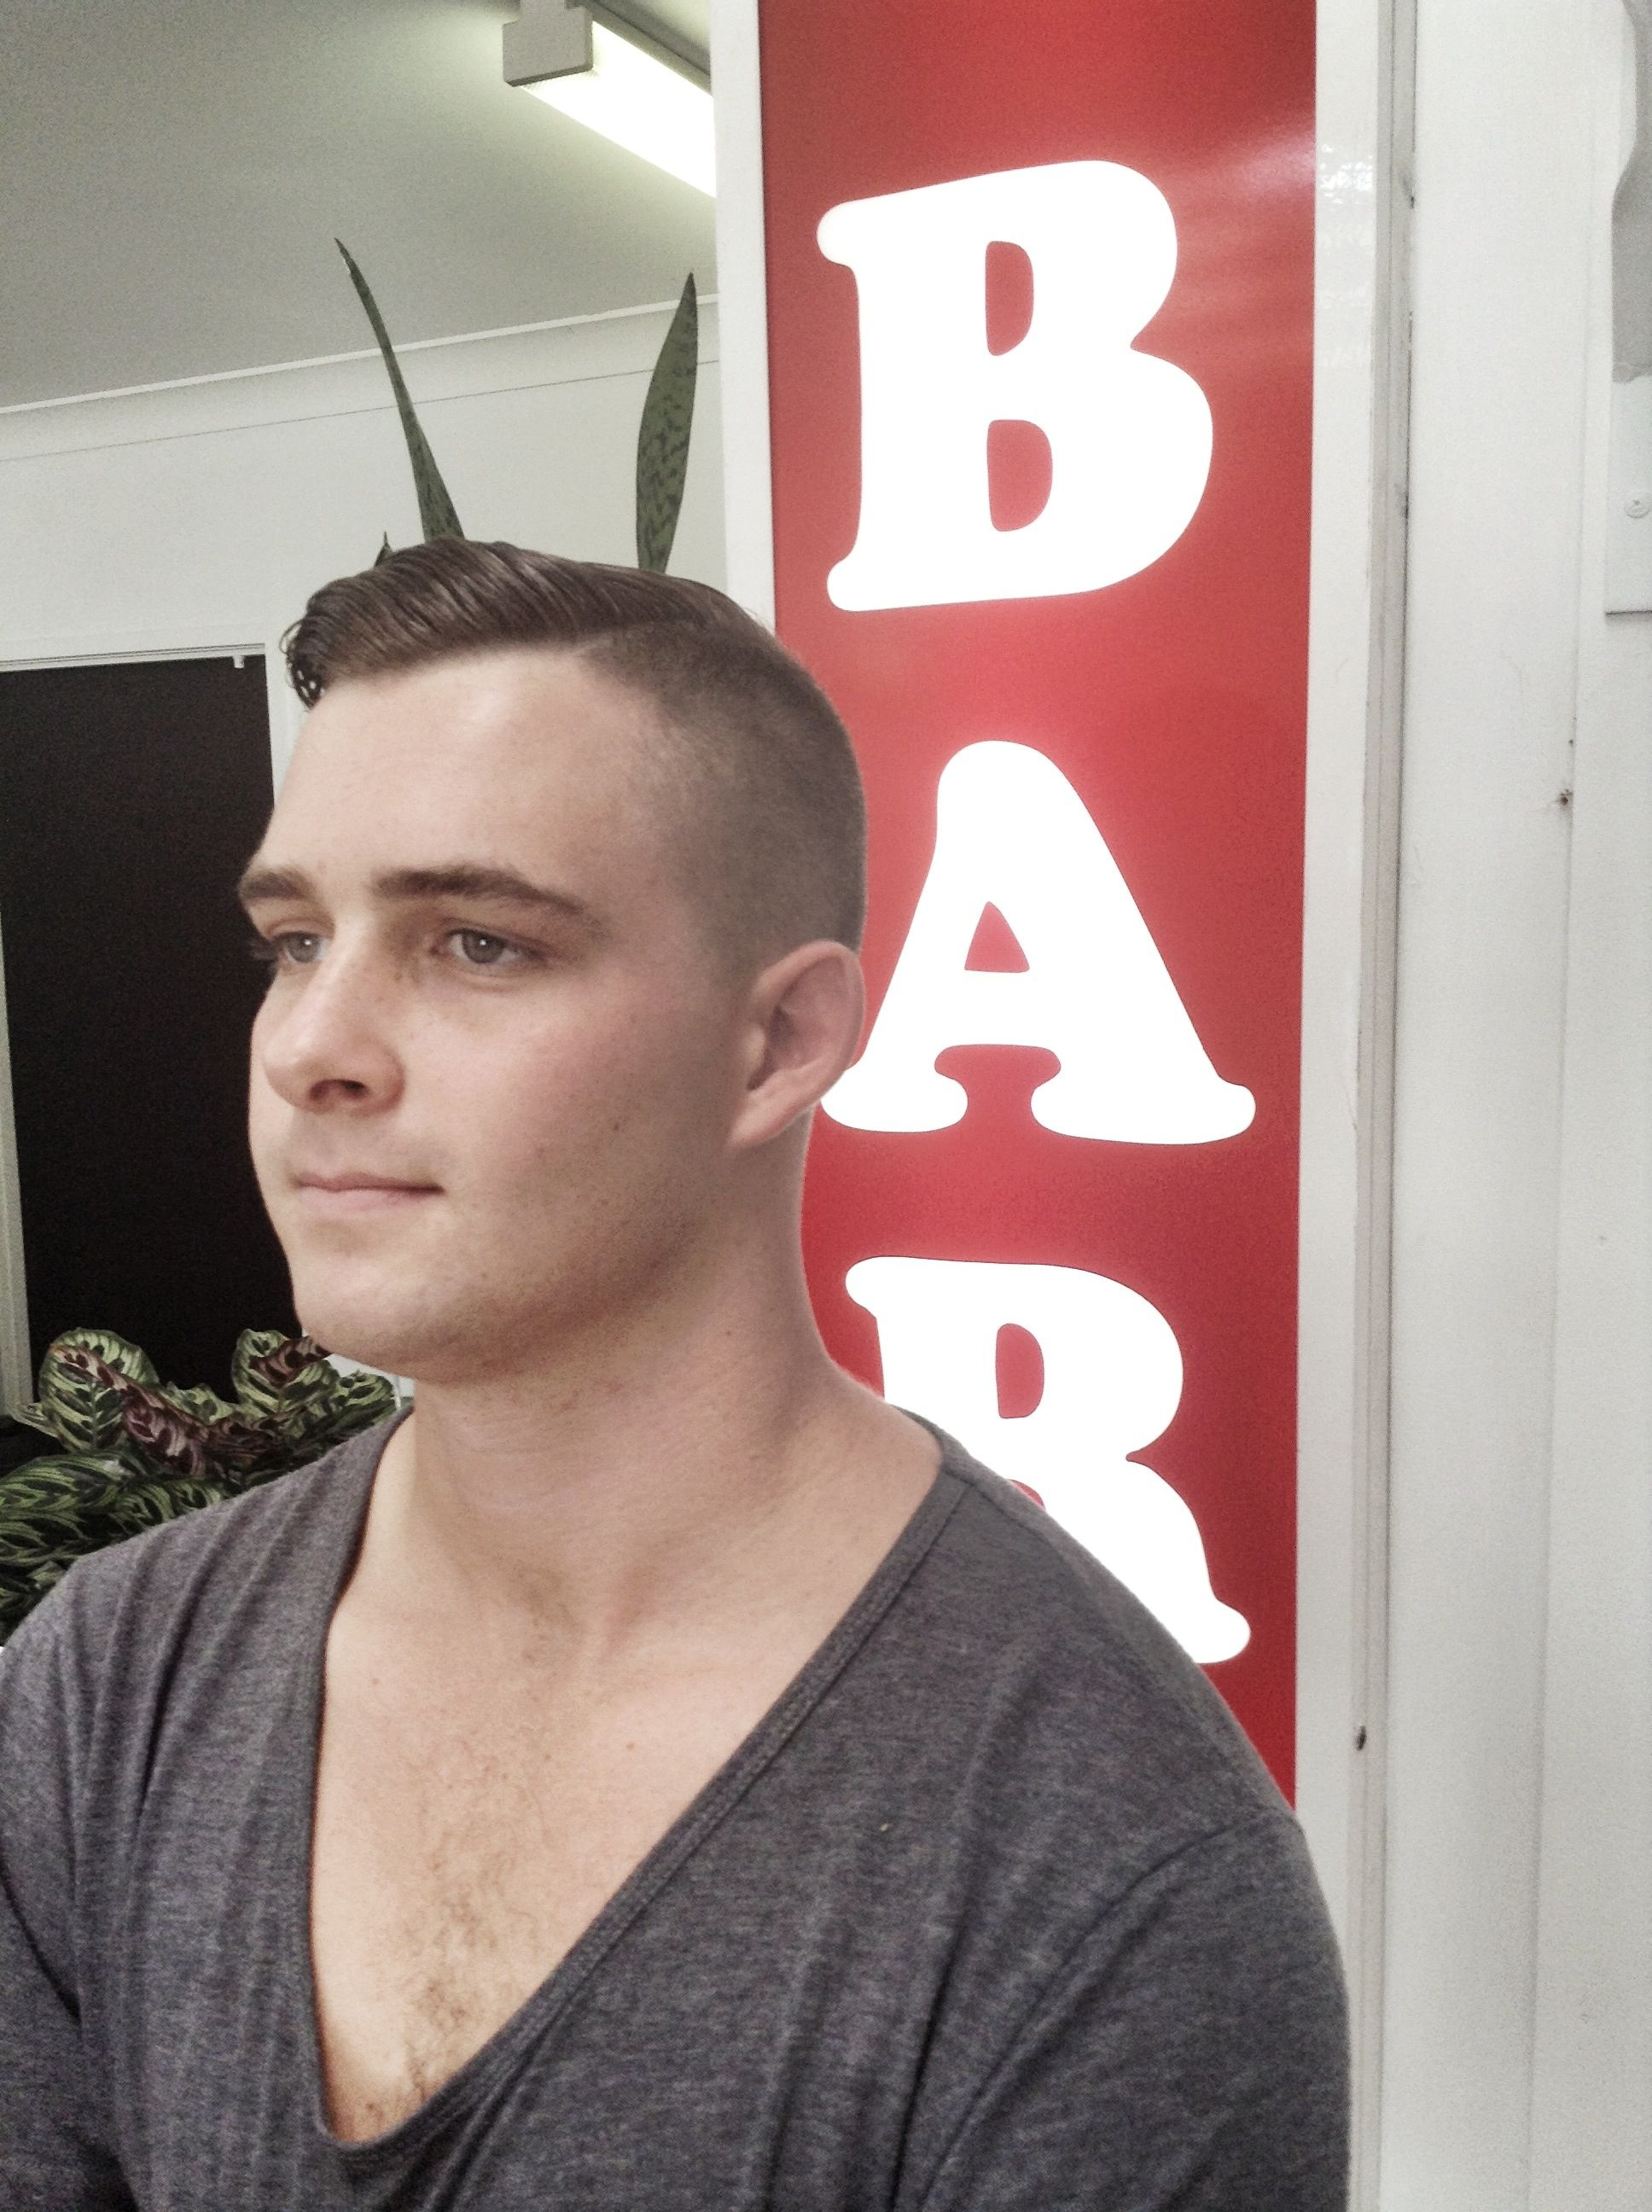 High And Tight Style Haircut Barber Shop Has Been Flat Out You